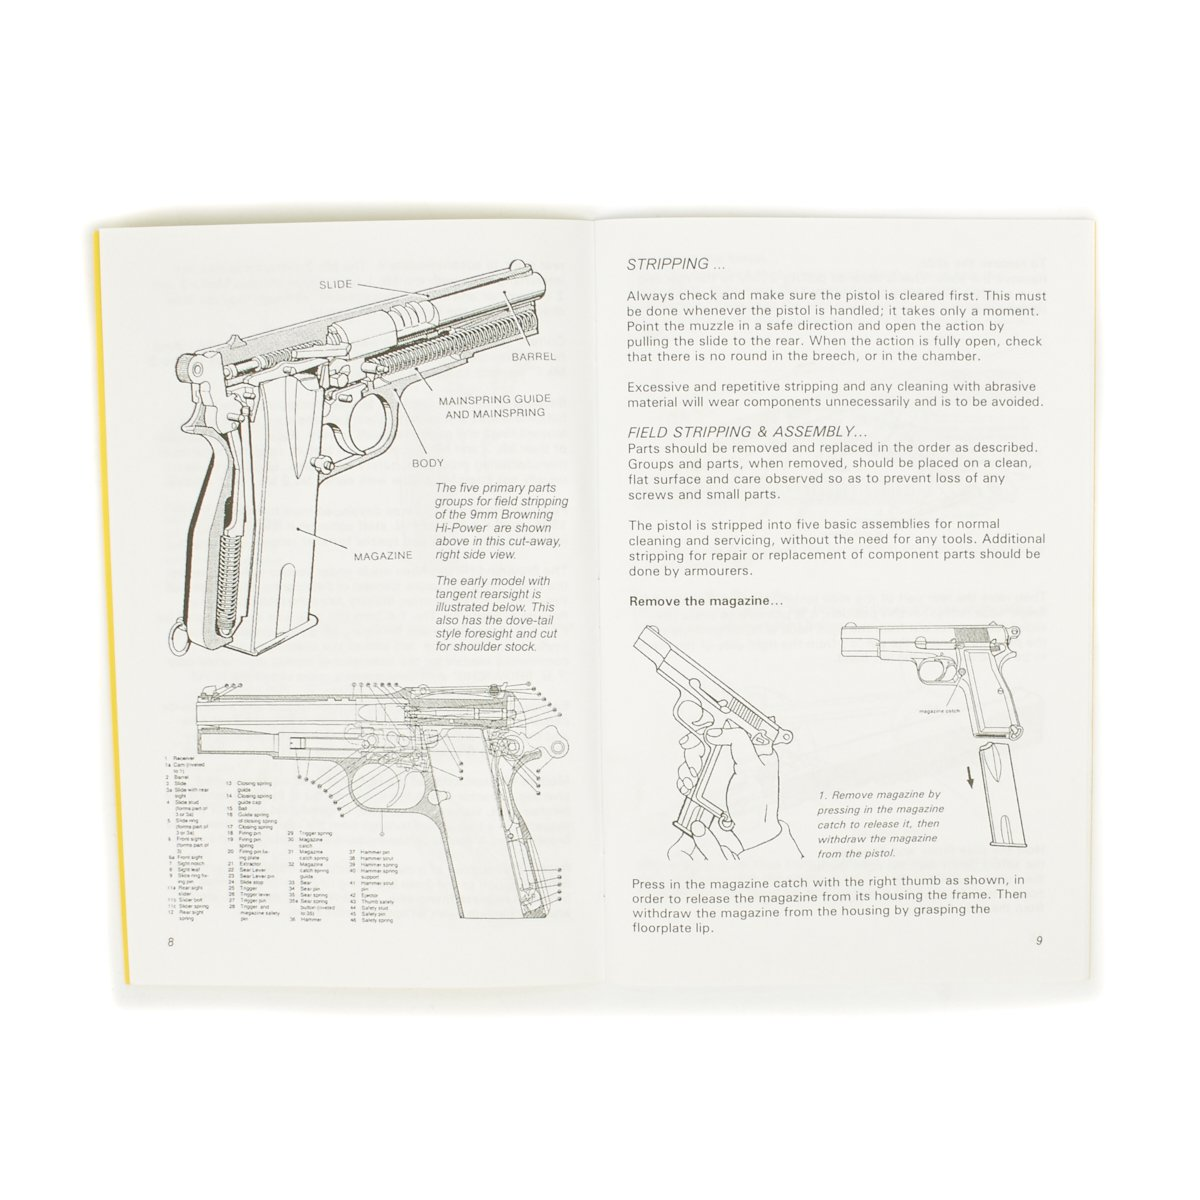 Handbook: 9mm Browning Hi-Power Pistol – International Military Antiques